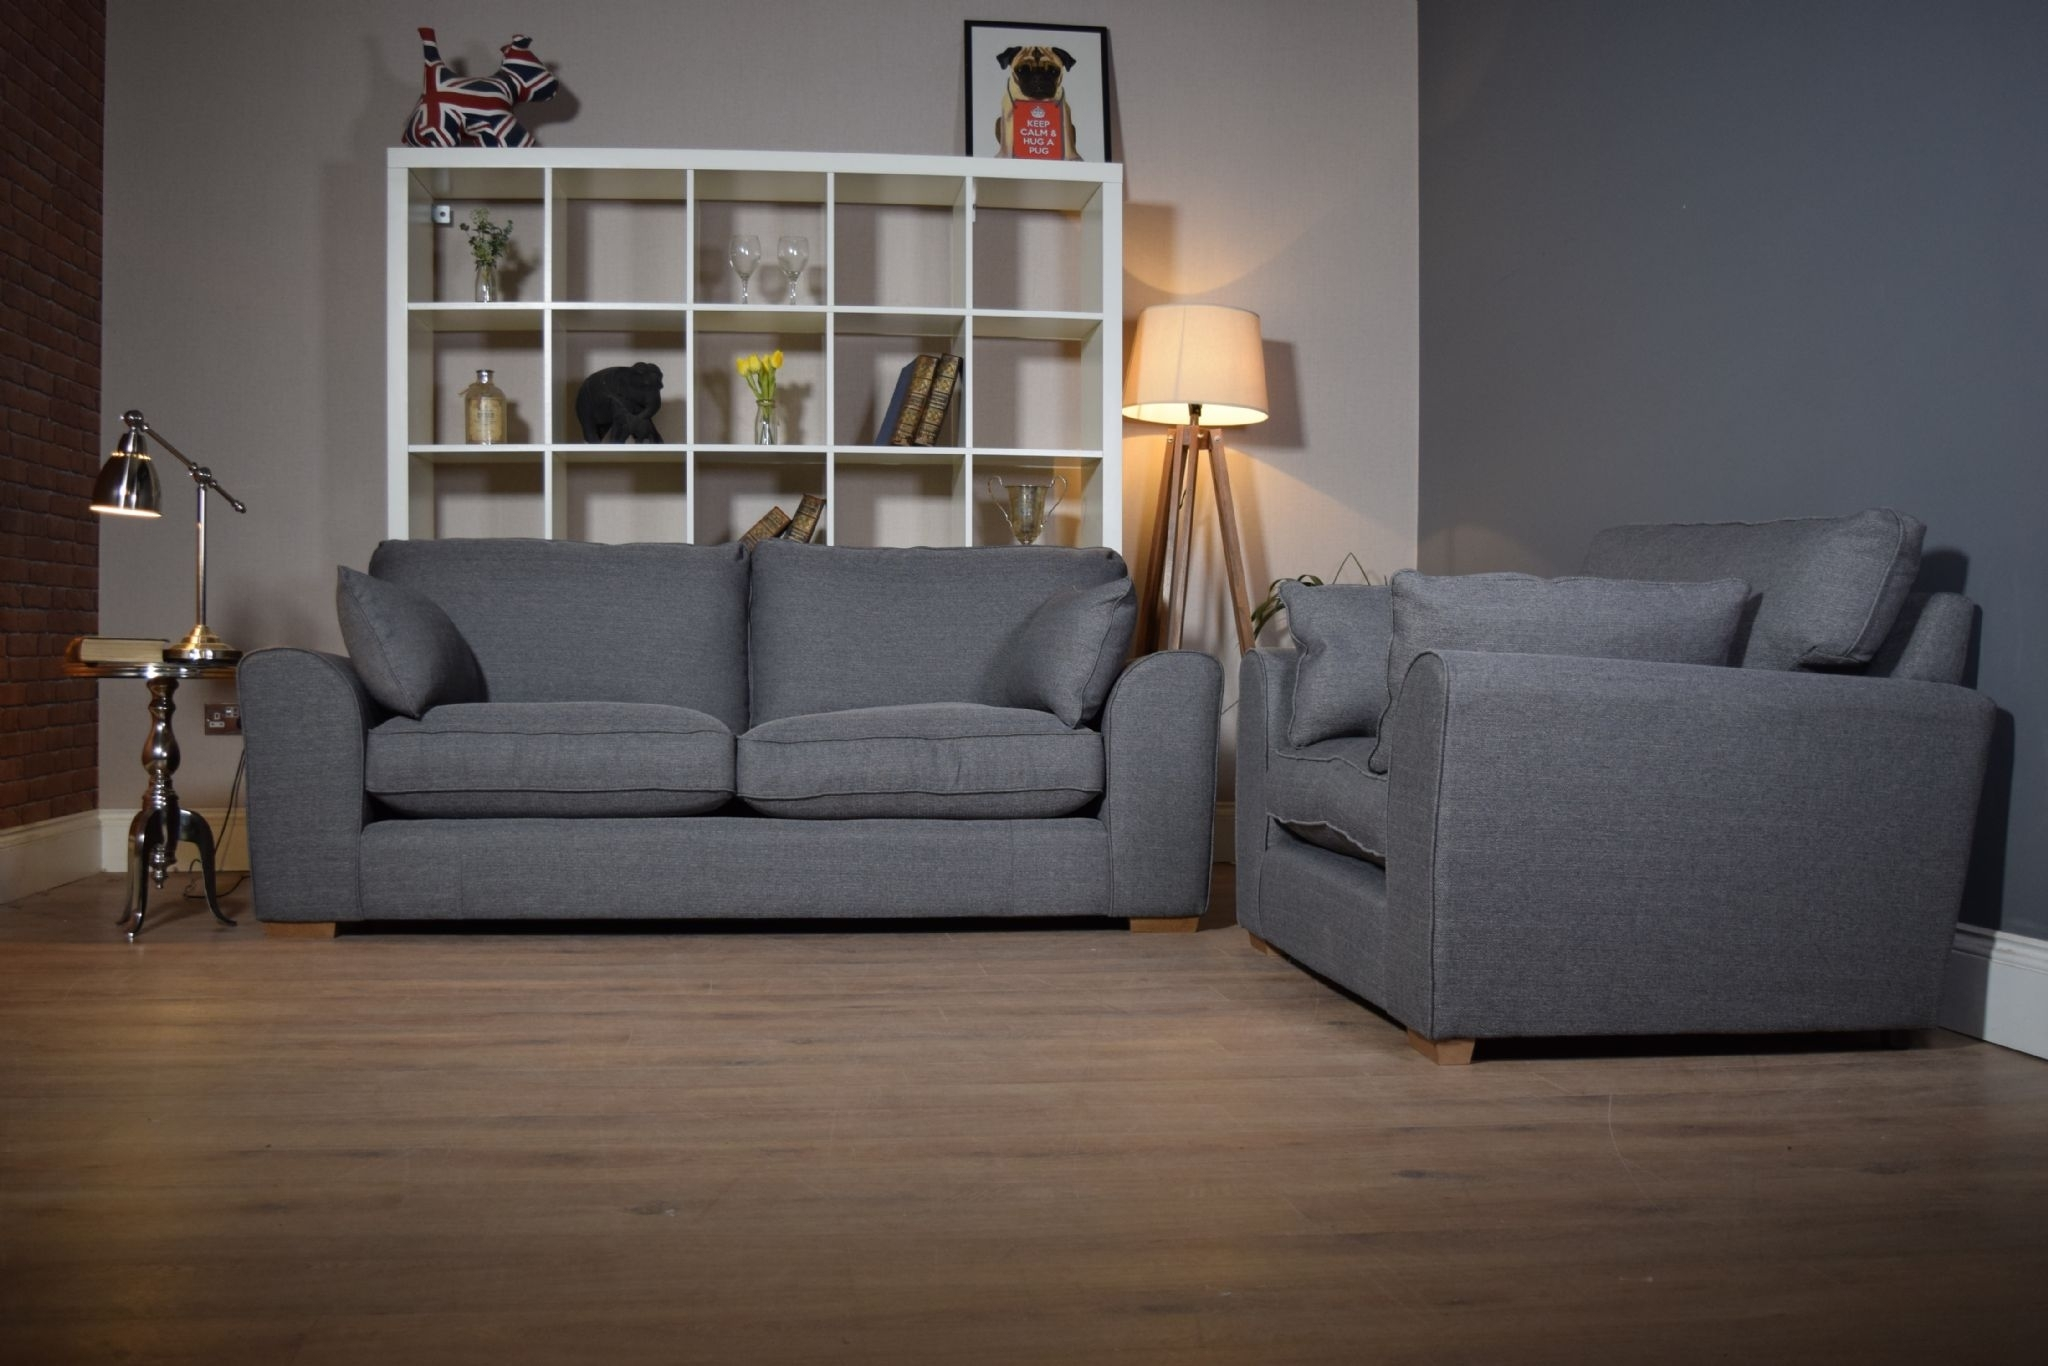 Set Ashdown 3 Seater Sofa & Cuddle Chair Set - Grey - Out Of Stock throughout 3 Seater Sofas and Cuddle Chairs (Image 6 of 10)